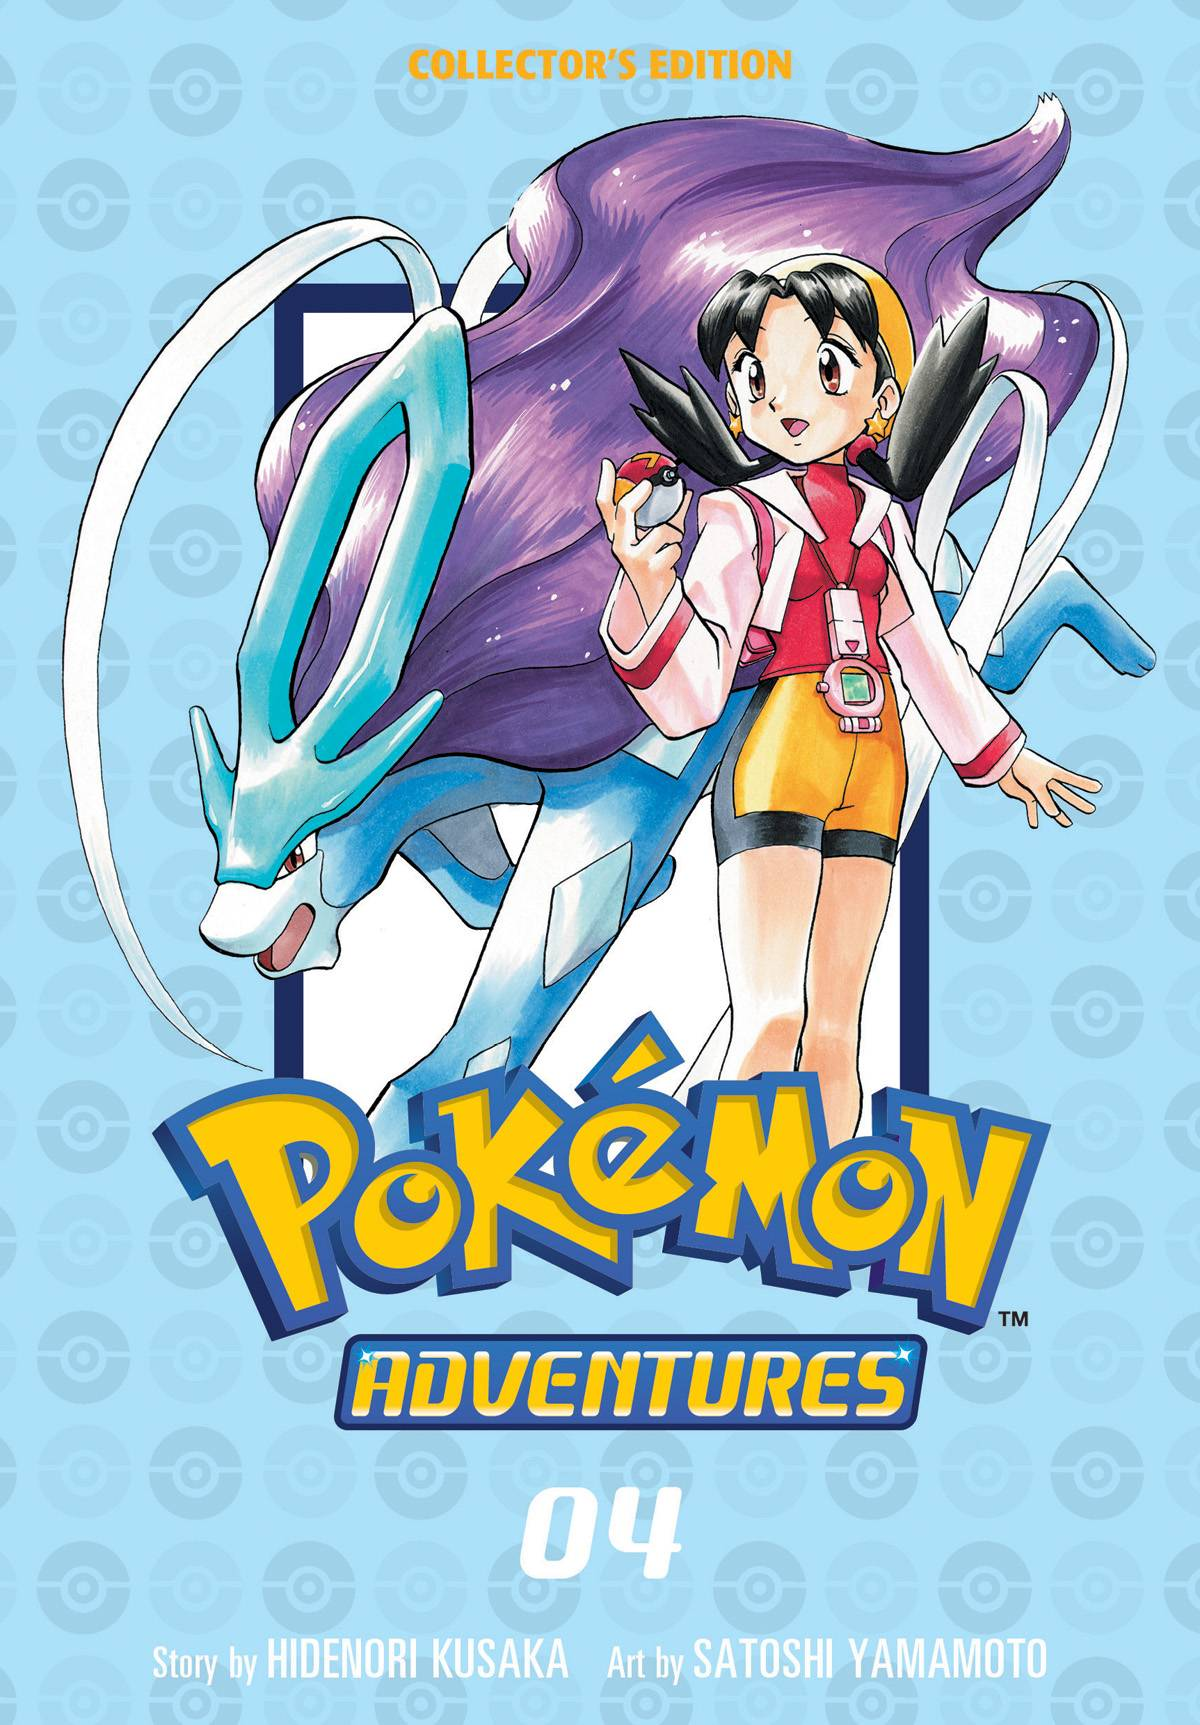 POKEMON ADV COLLECTORS ED TP 04